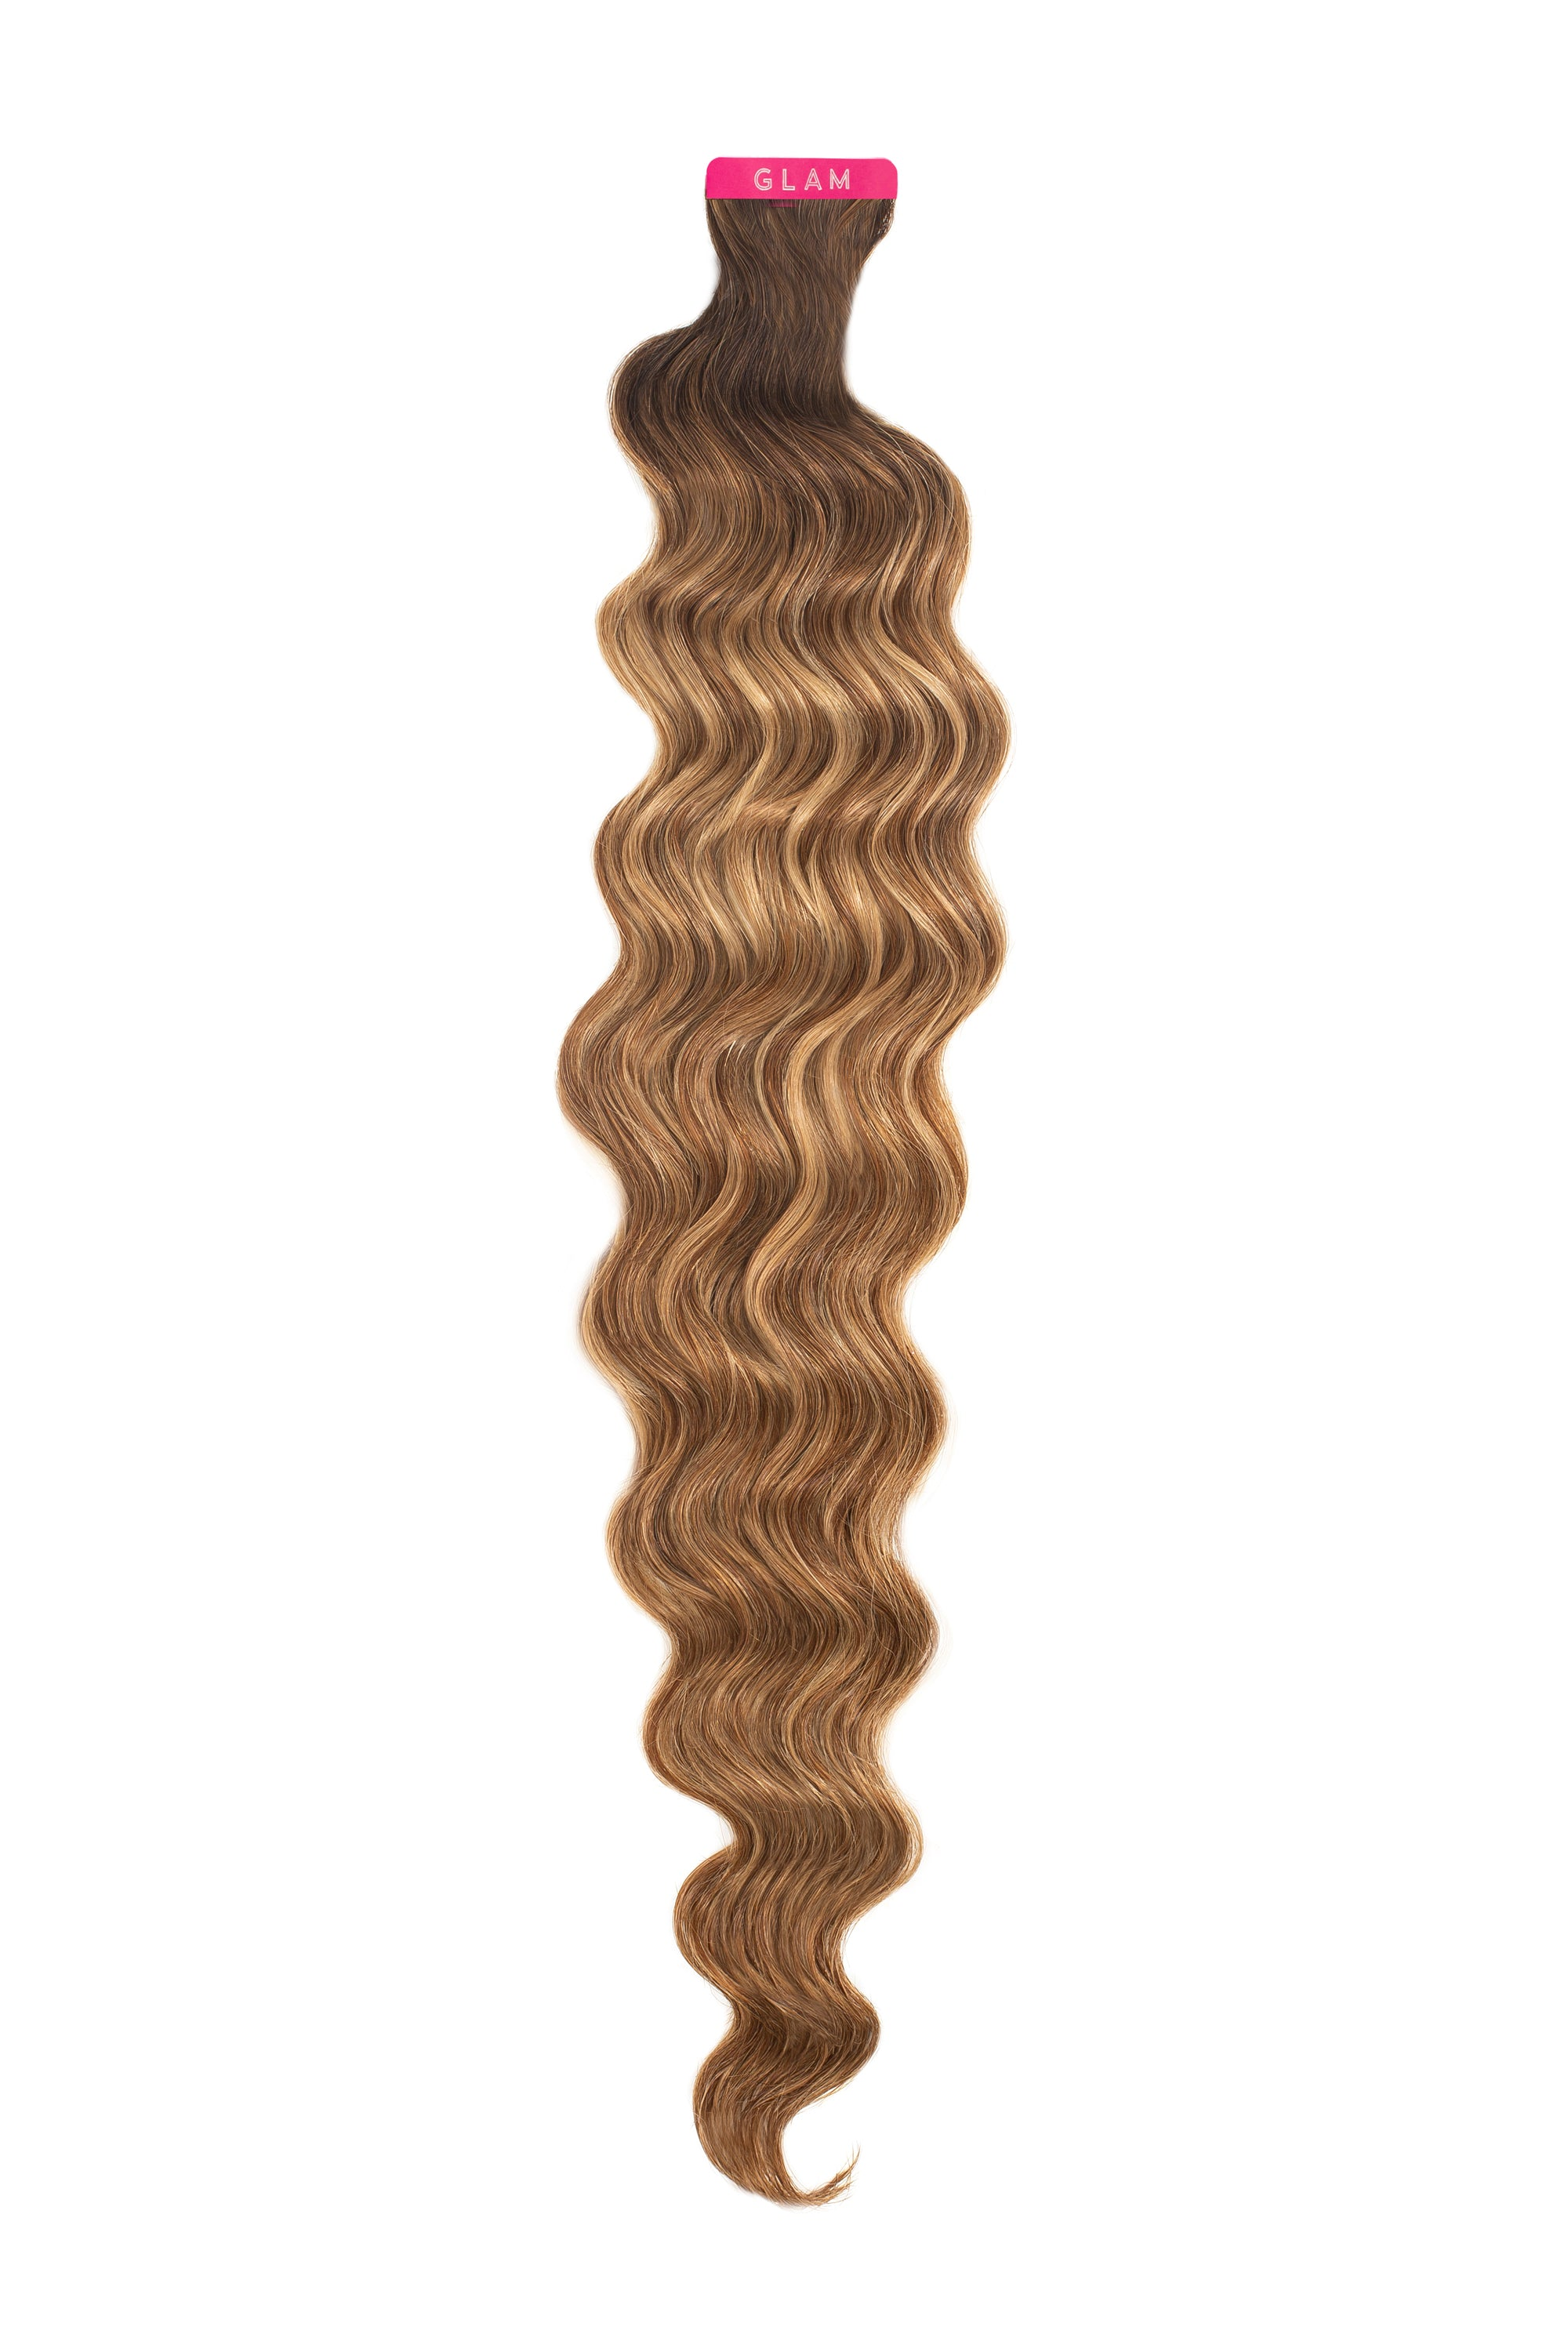 Mocha Bronde Balayage Wavy Tape-In Extension